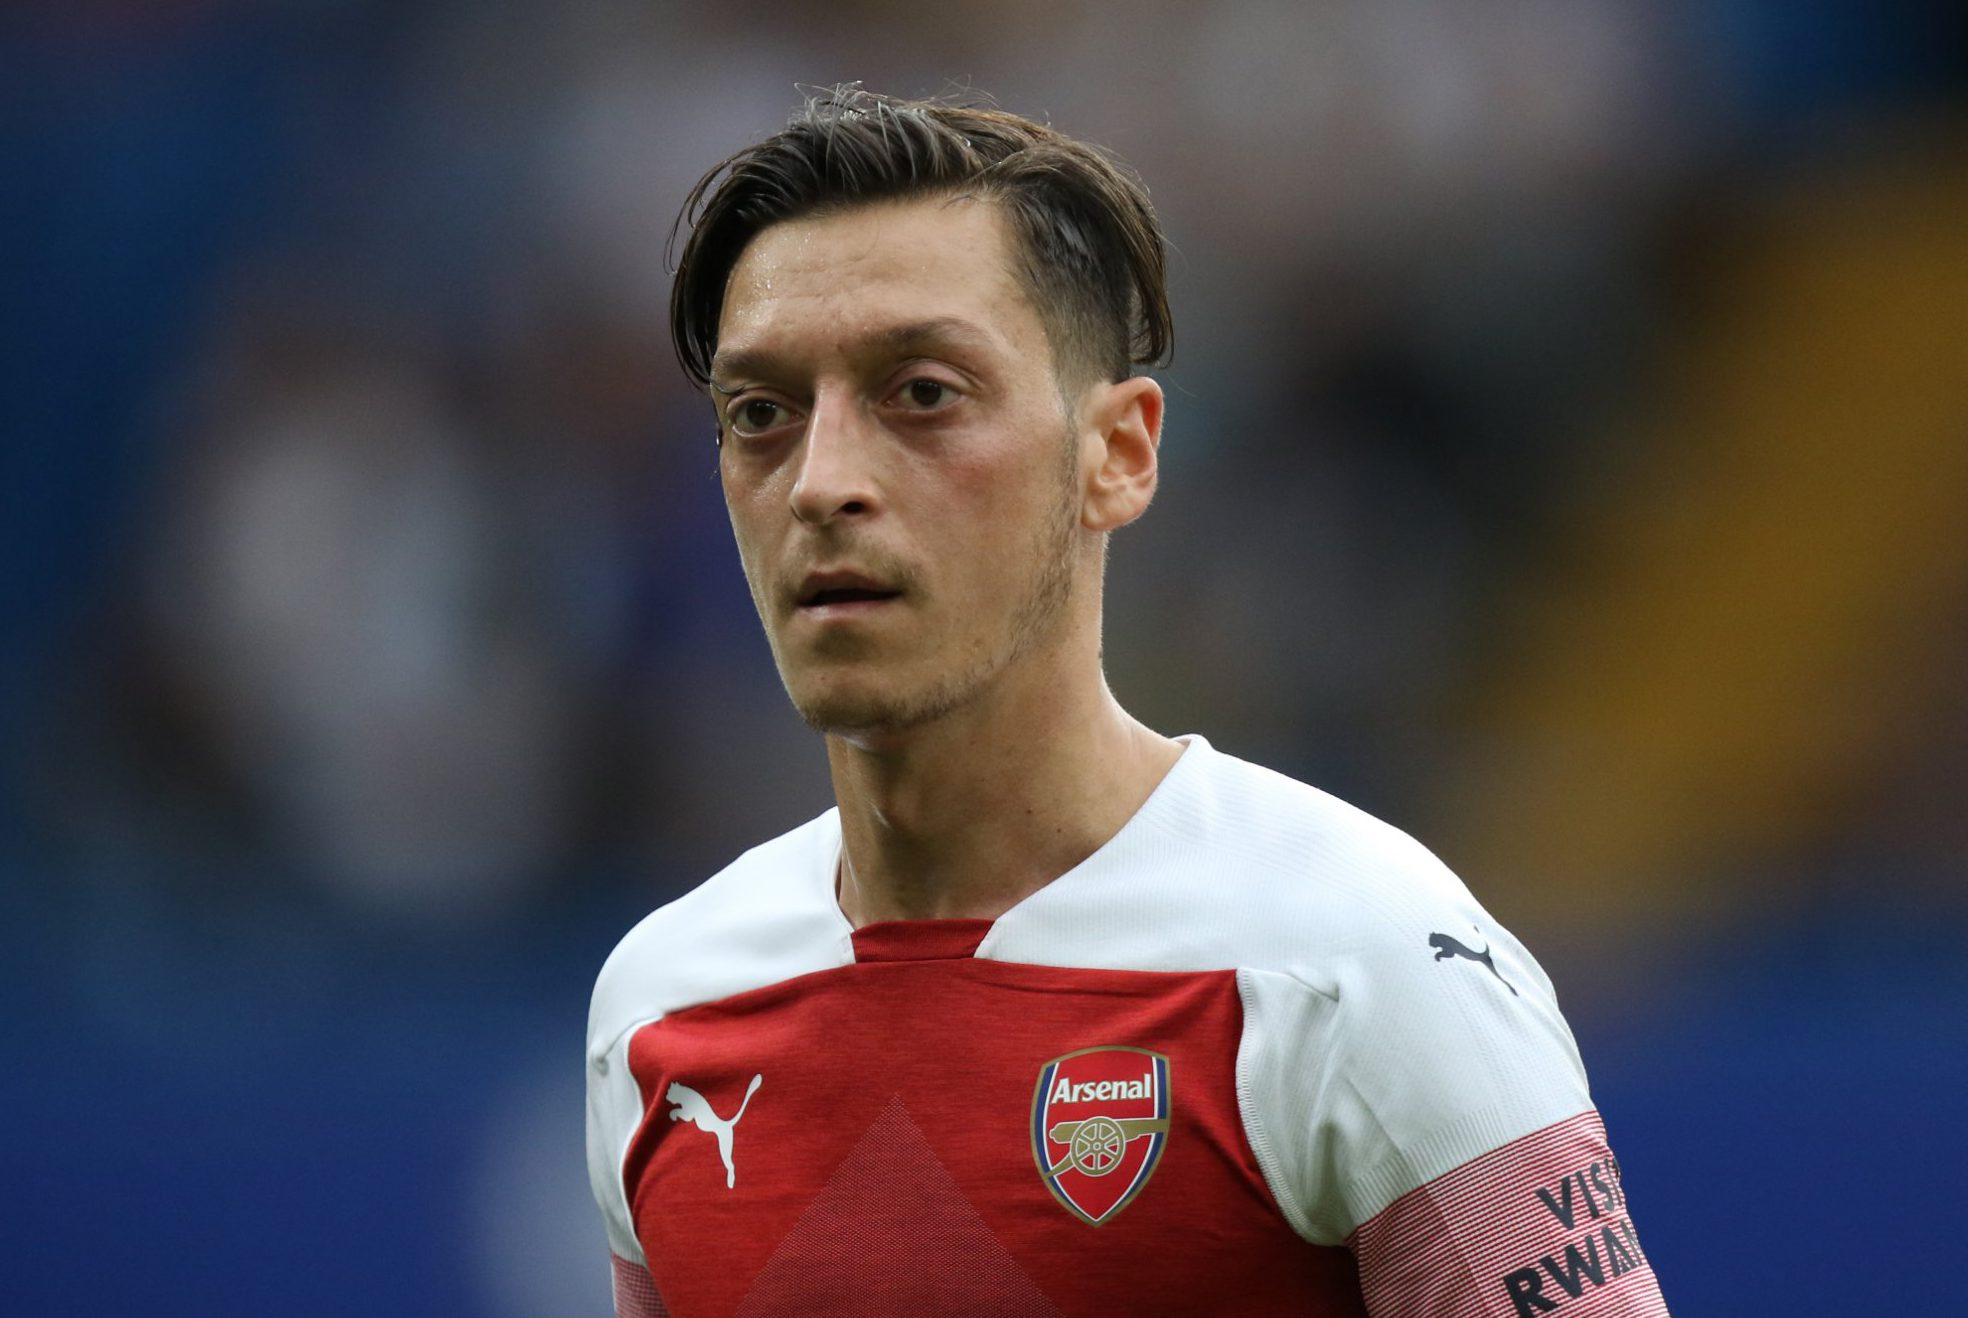 Mesut Ozil and Ainsley Maitland-Niles available to return for Arsenal's clash with Leicester City